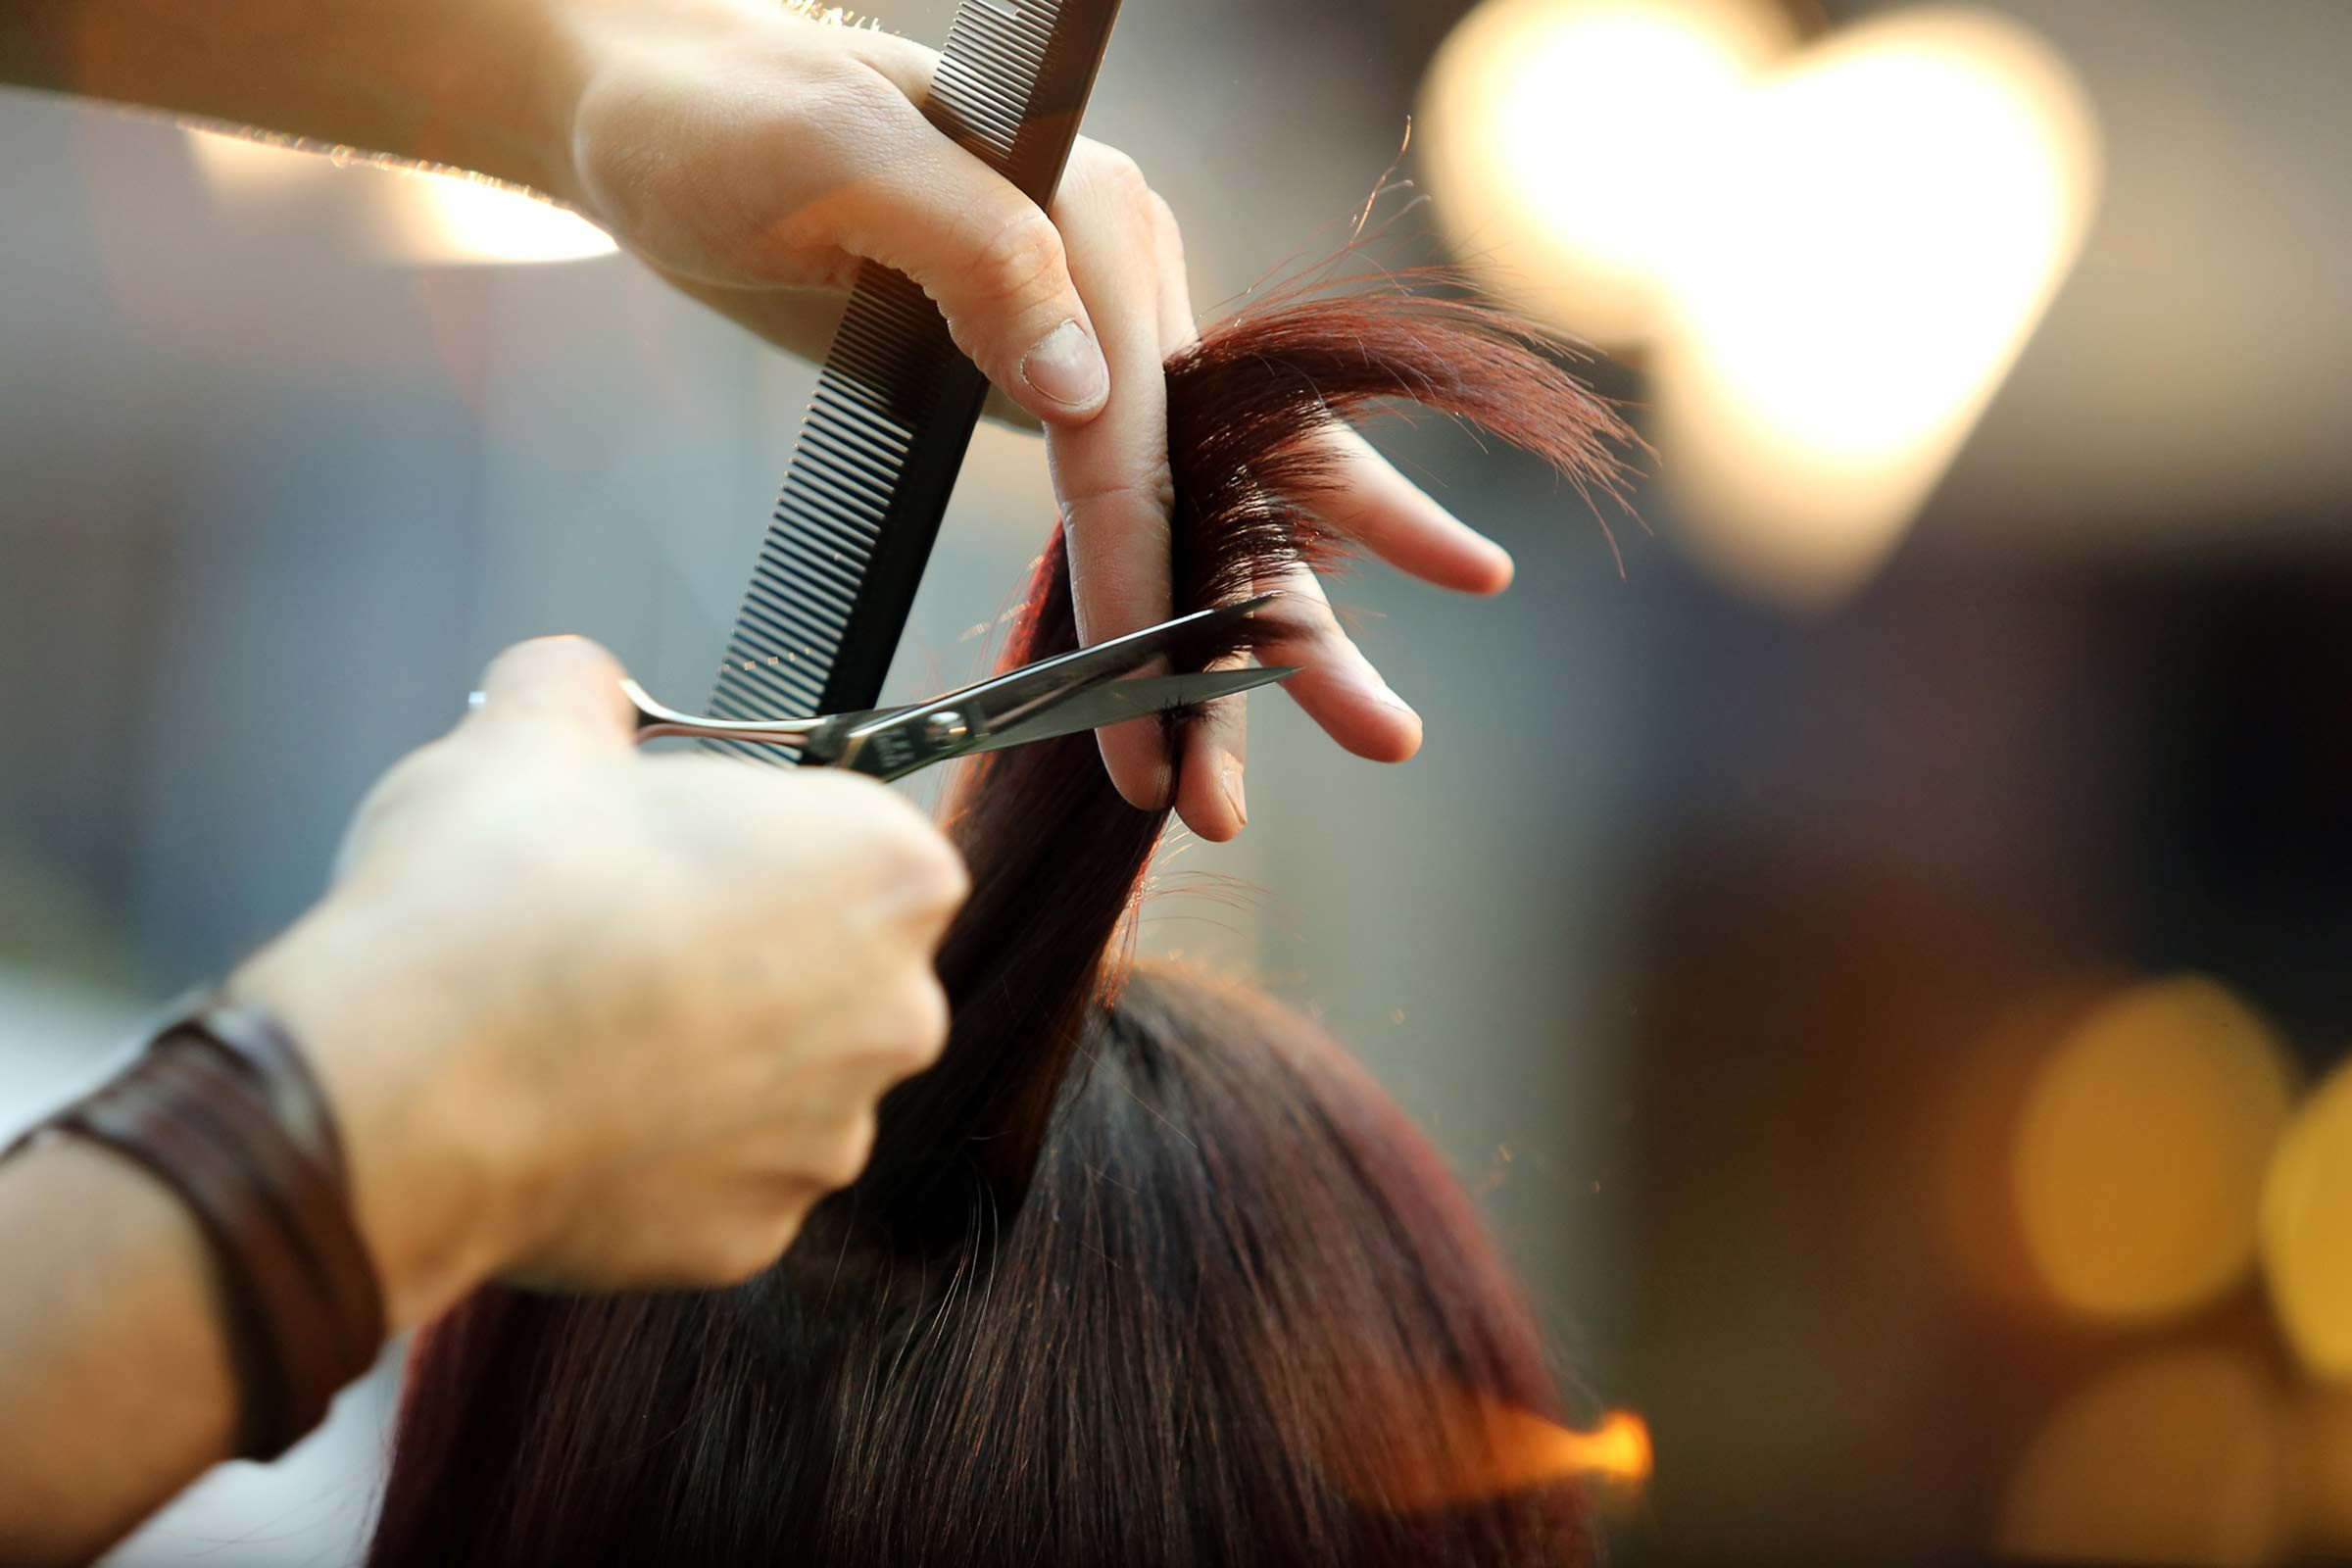 Haircut Style Terms to Know Before Your Next Salon Visit | Reader\'s ...